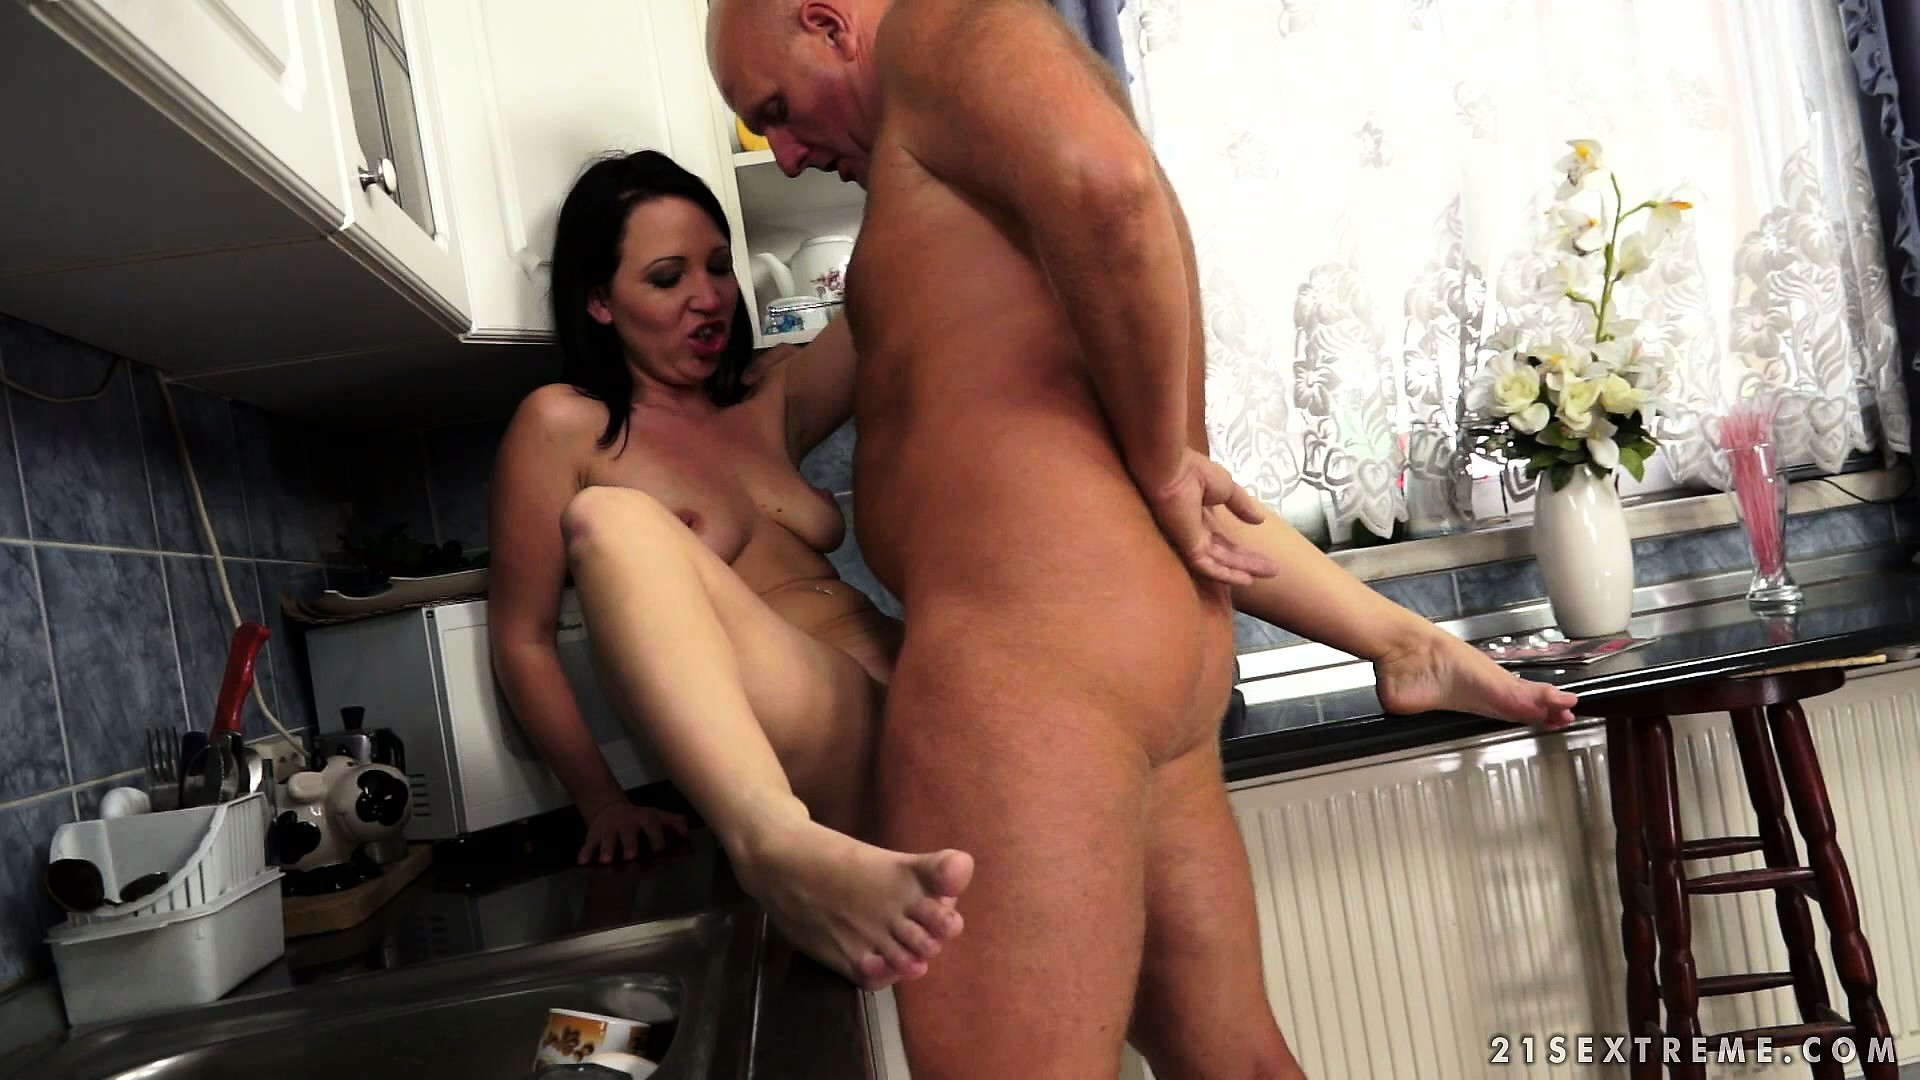 Porno Video of Old Dude Has A Young Hottie And They Trade Oral In The Kitchen